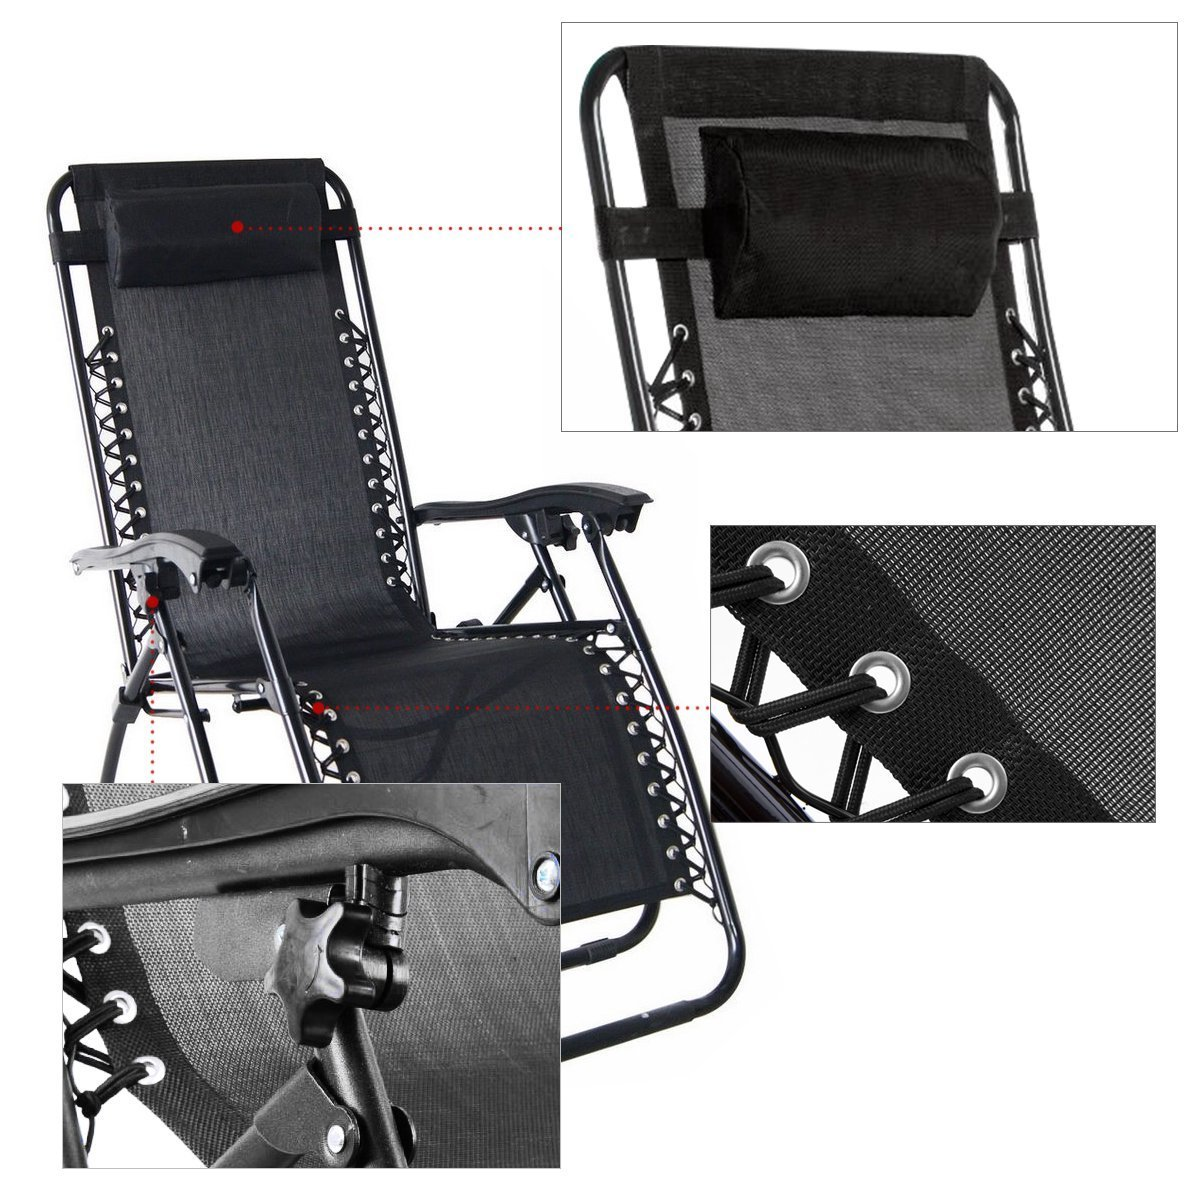 Odaof Zero Gravity Recliner Review